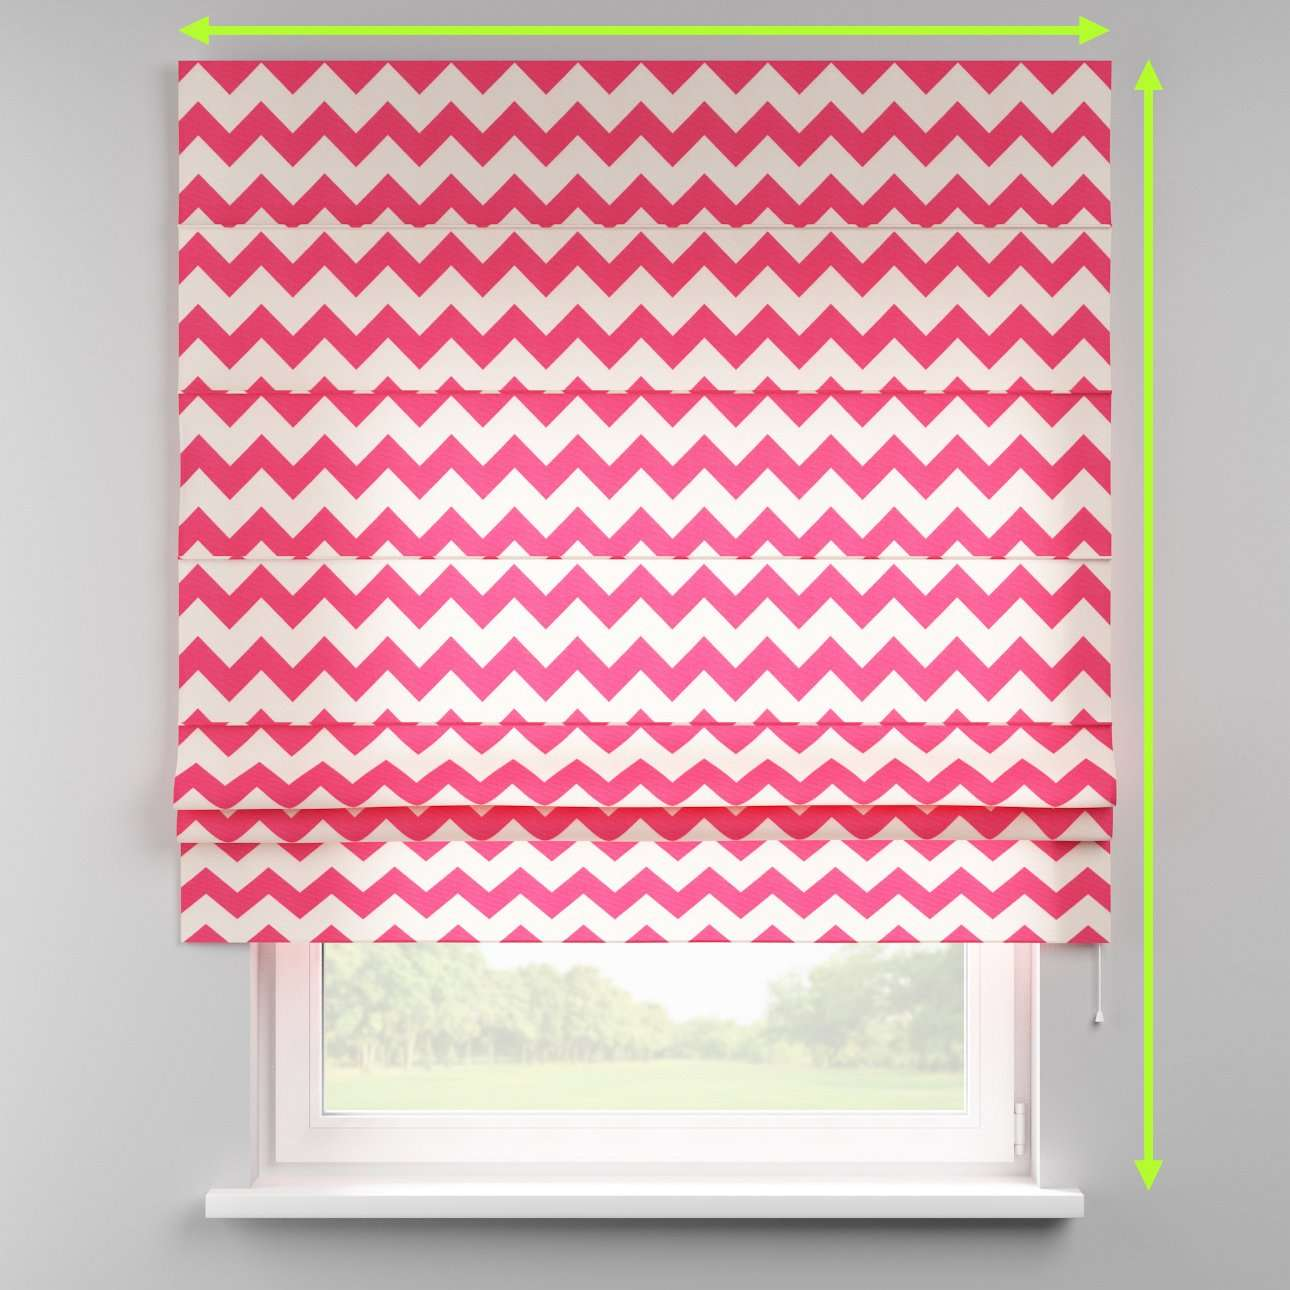 Padva roman blind  in collection Comics/Geometrical, fabric: 135-00